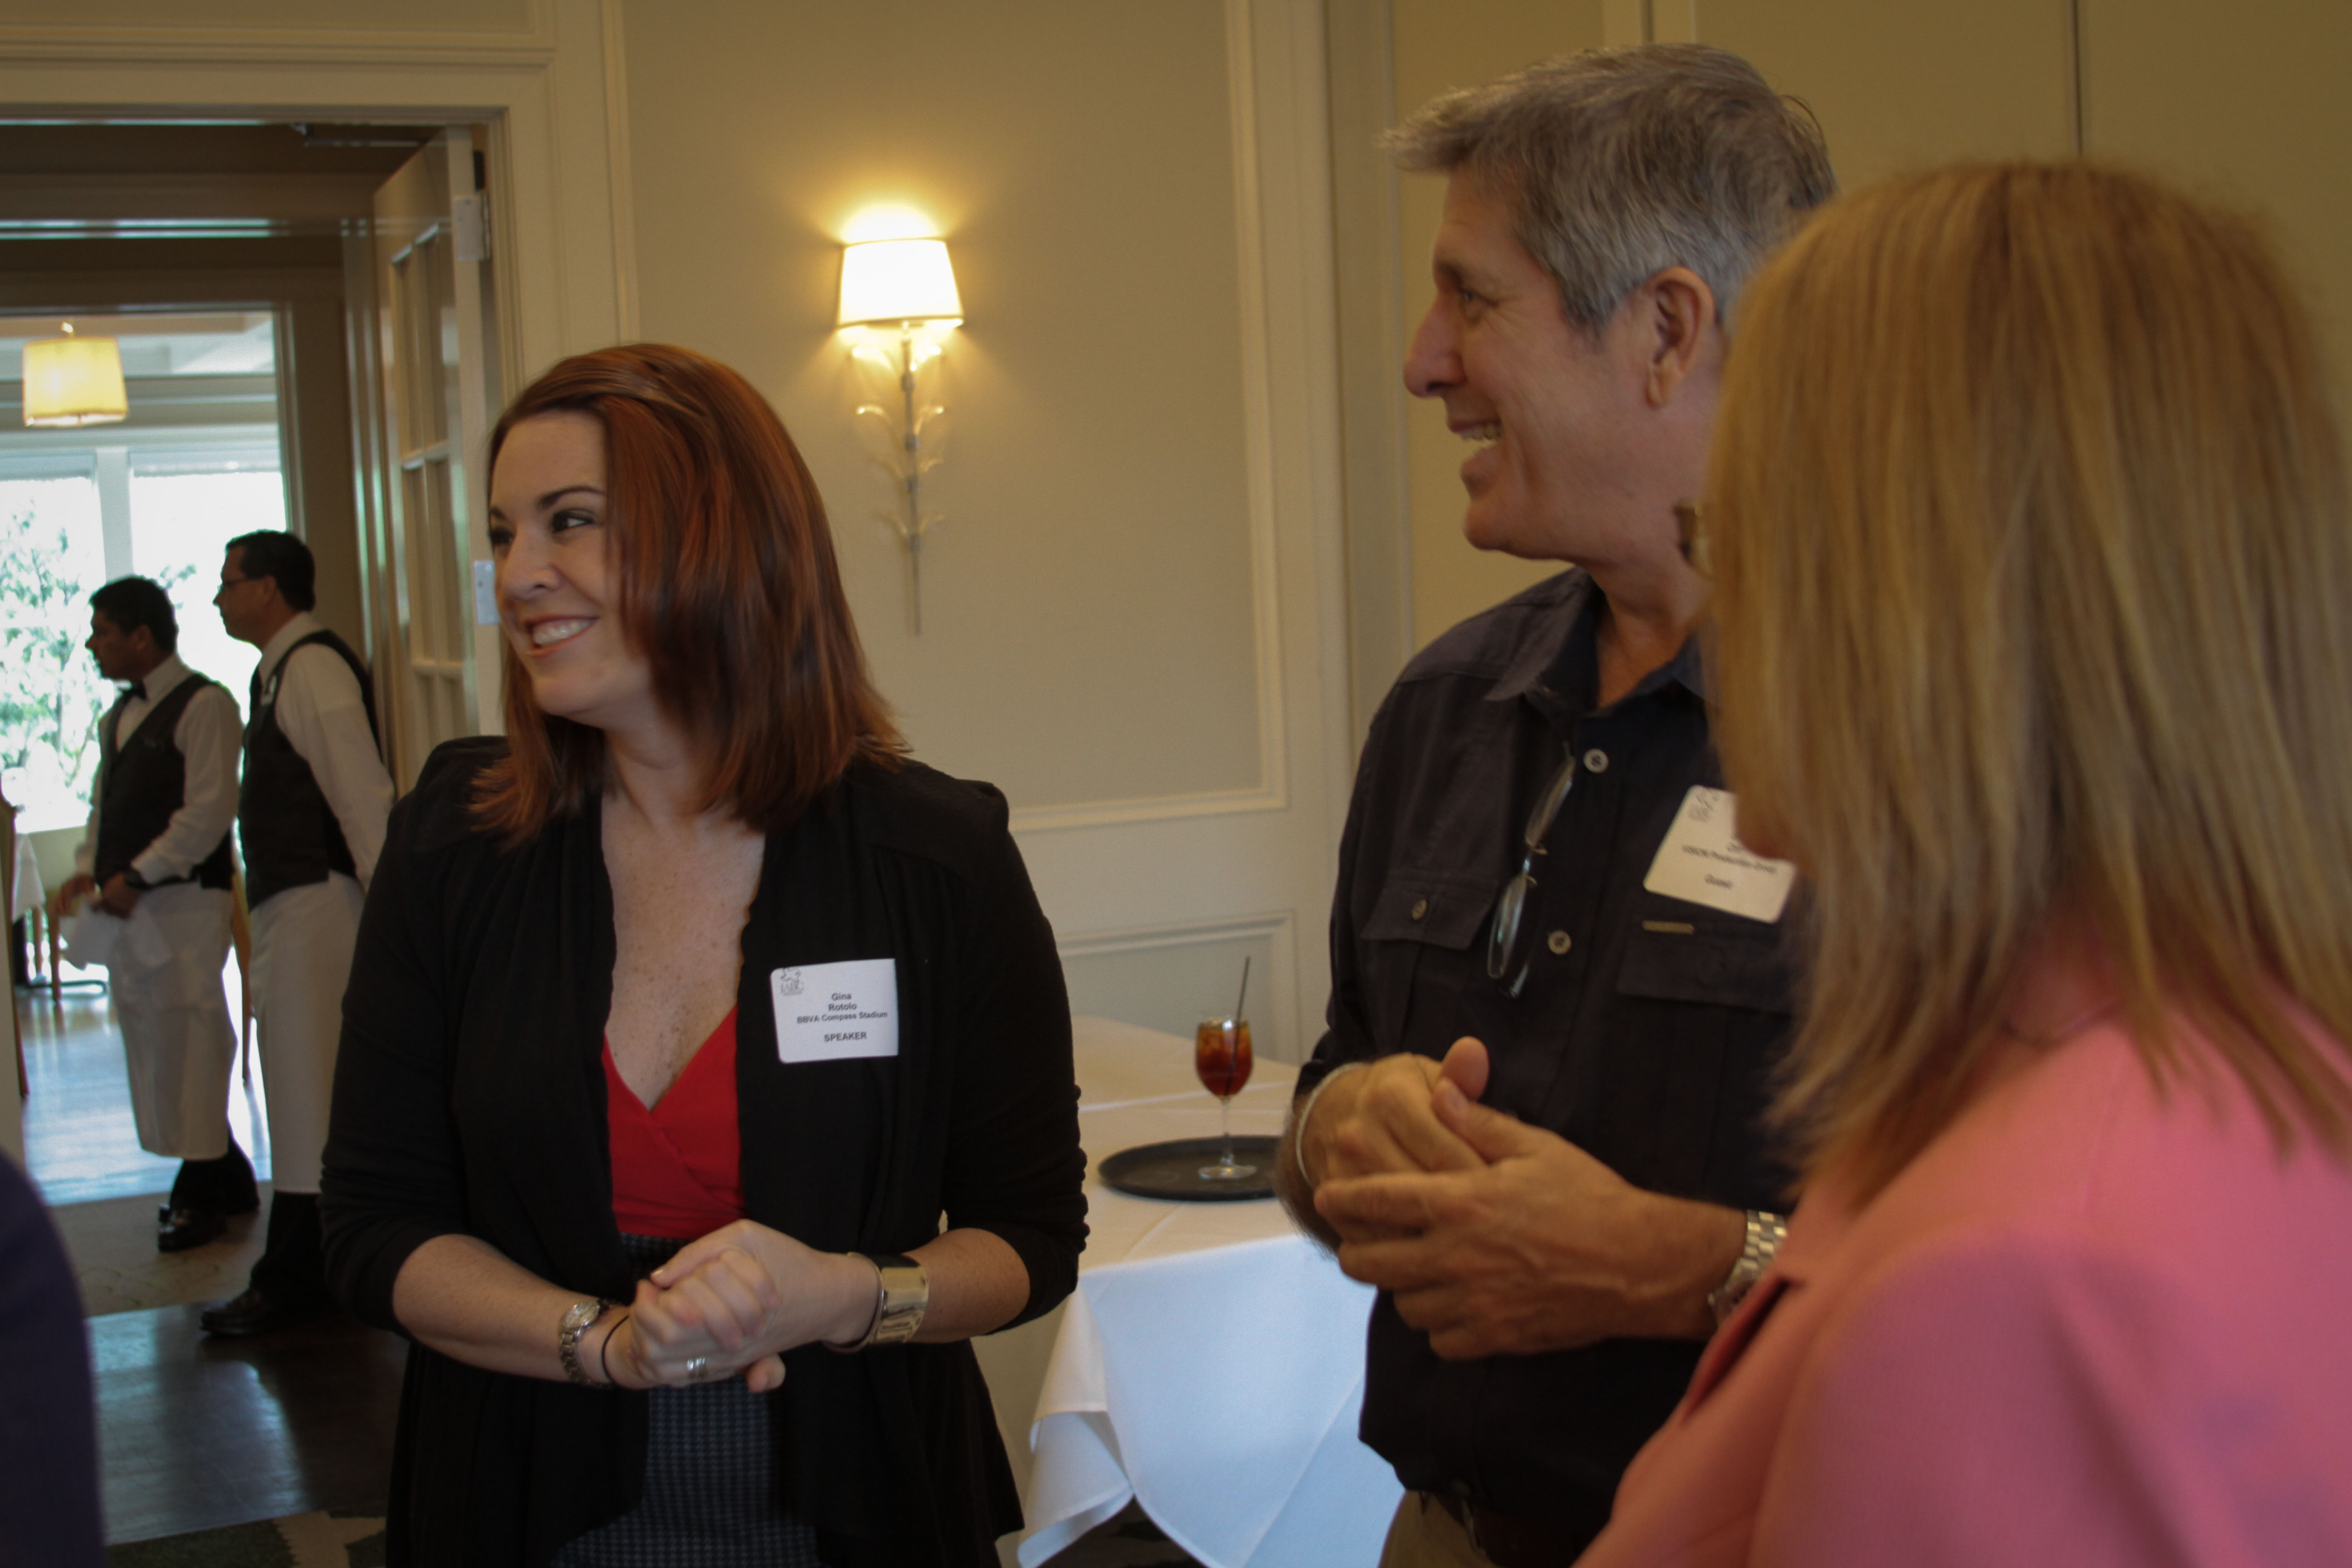 IABC Houston Luncheon - Managing Events with Gina Rotolo